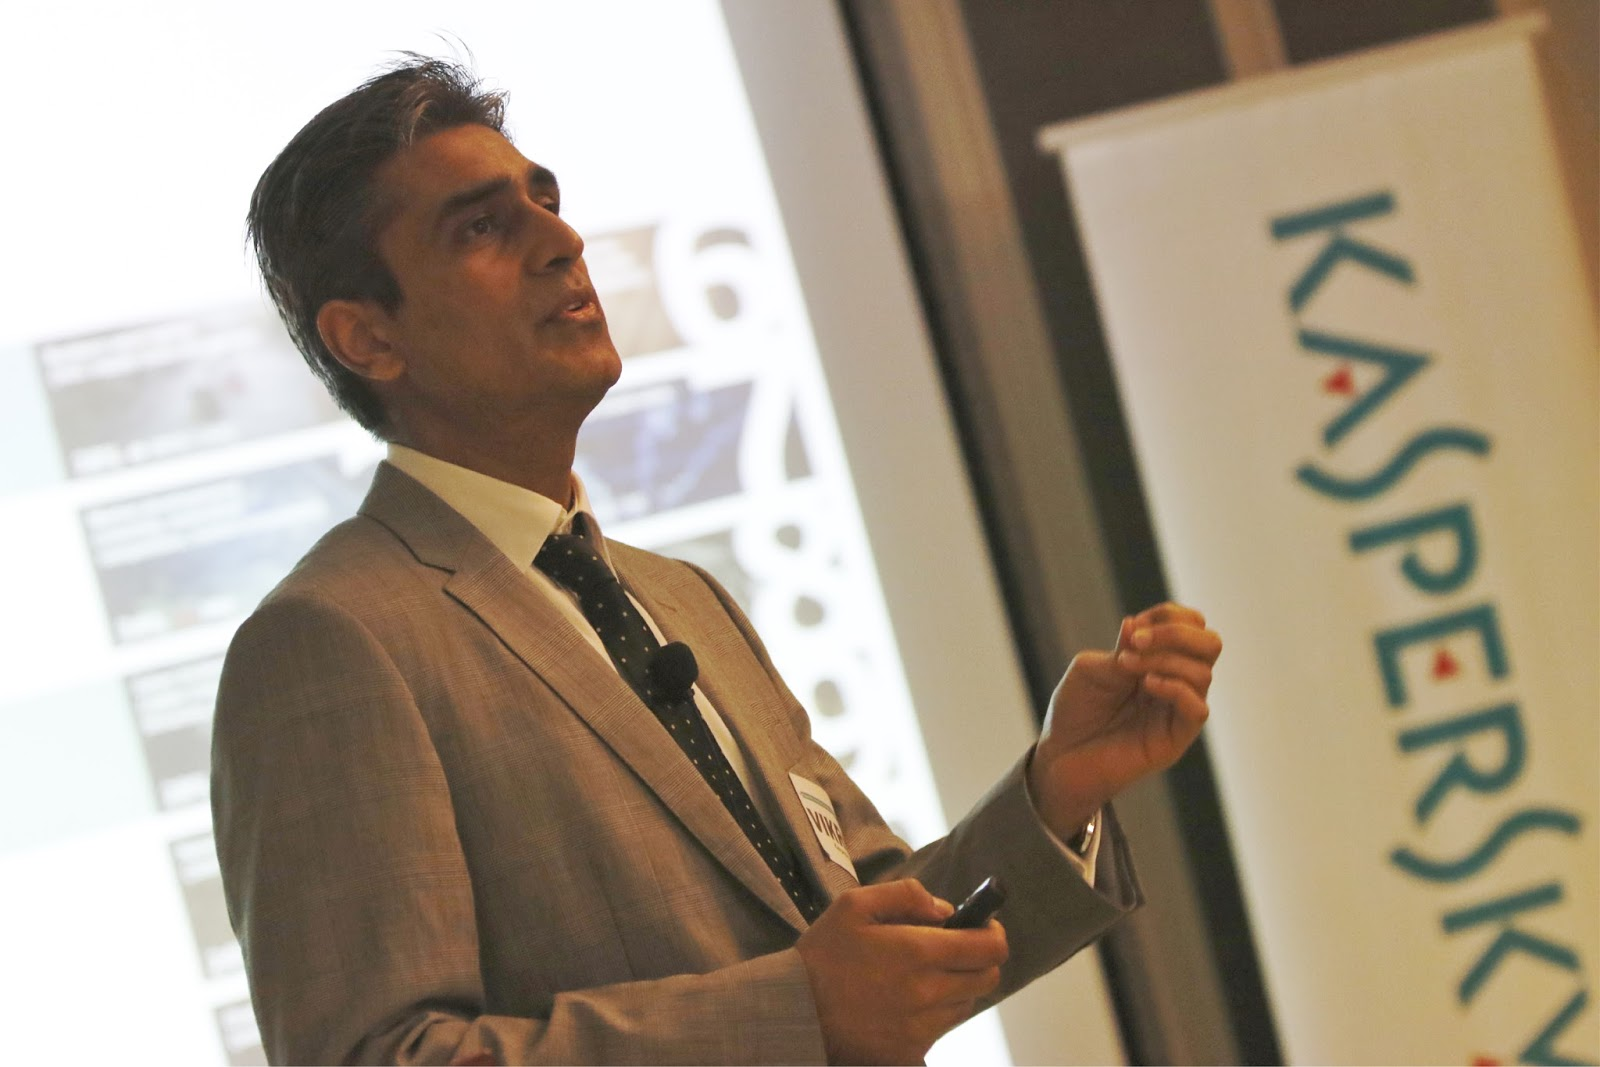 Vikram Kalkat, Kaspersky Industrial CyberSecurity Global Business Development at Kaspersky Lab Asia Pacific